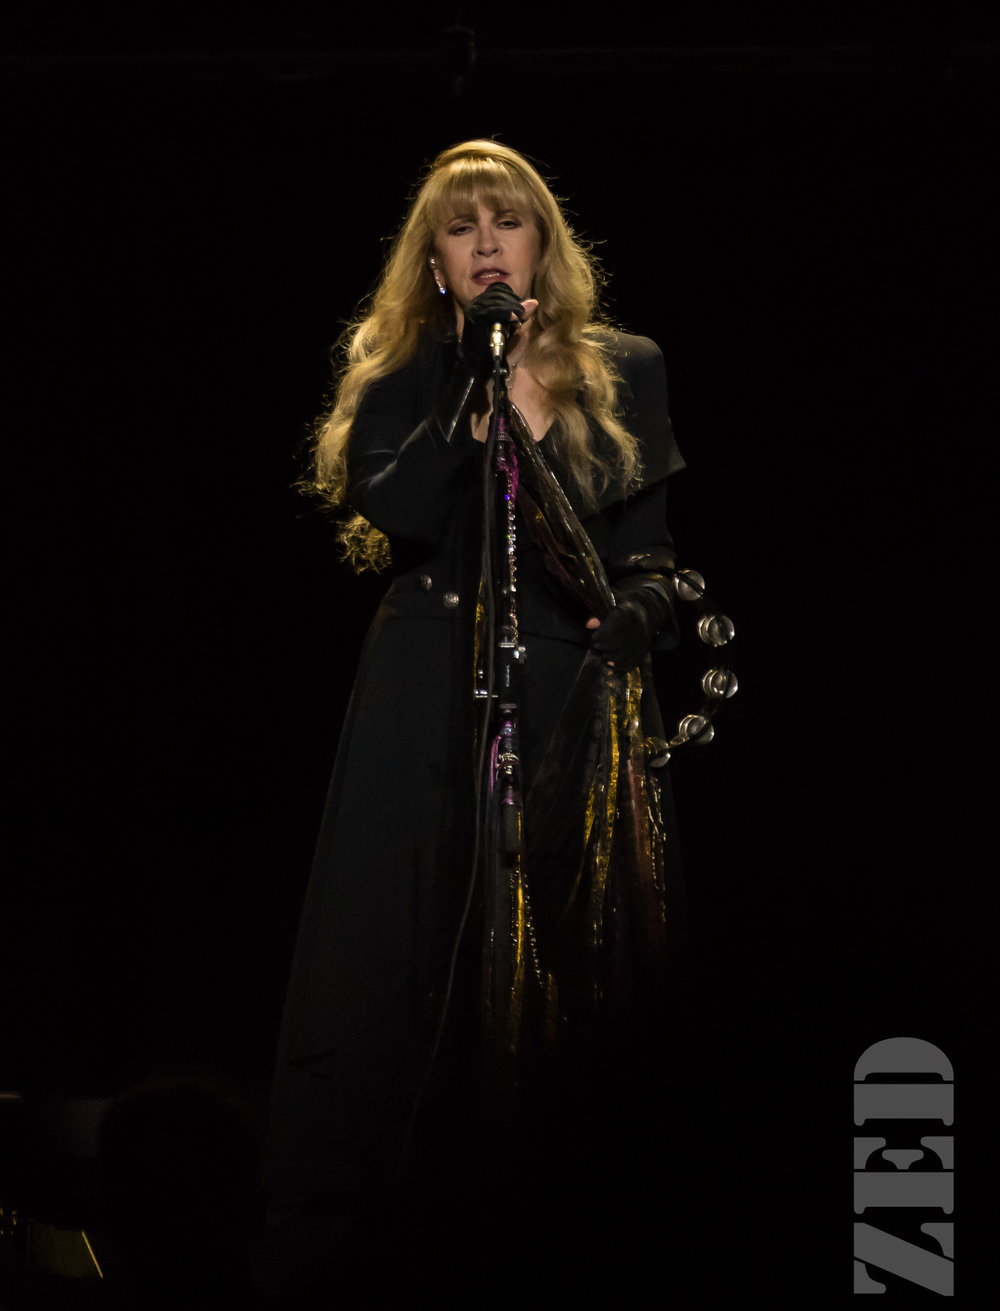 Stevie Nicks @ Spark Arena 21 Nov 17-1.jpg